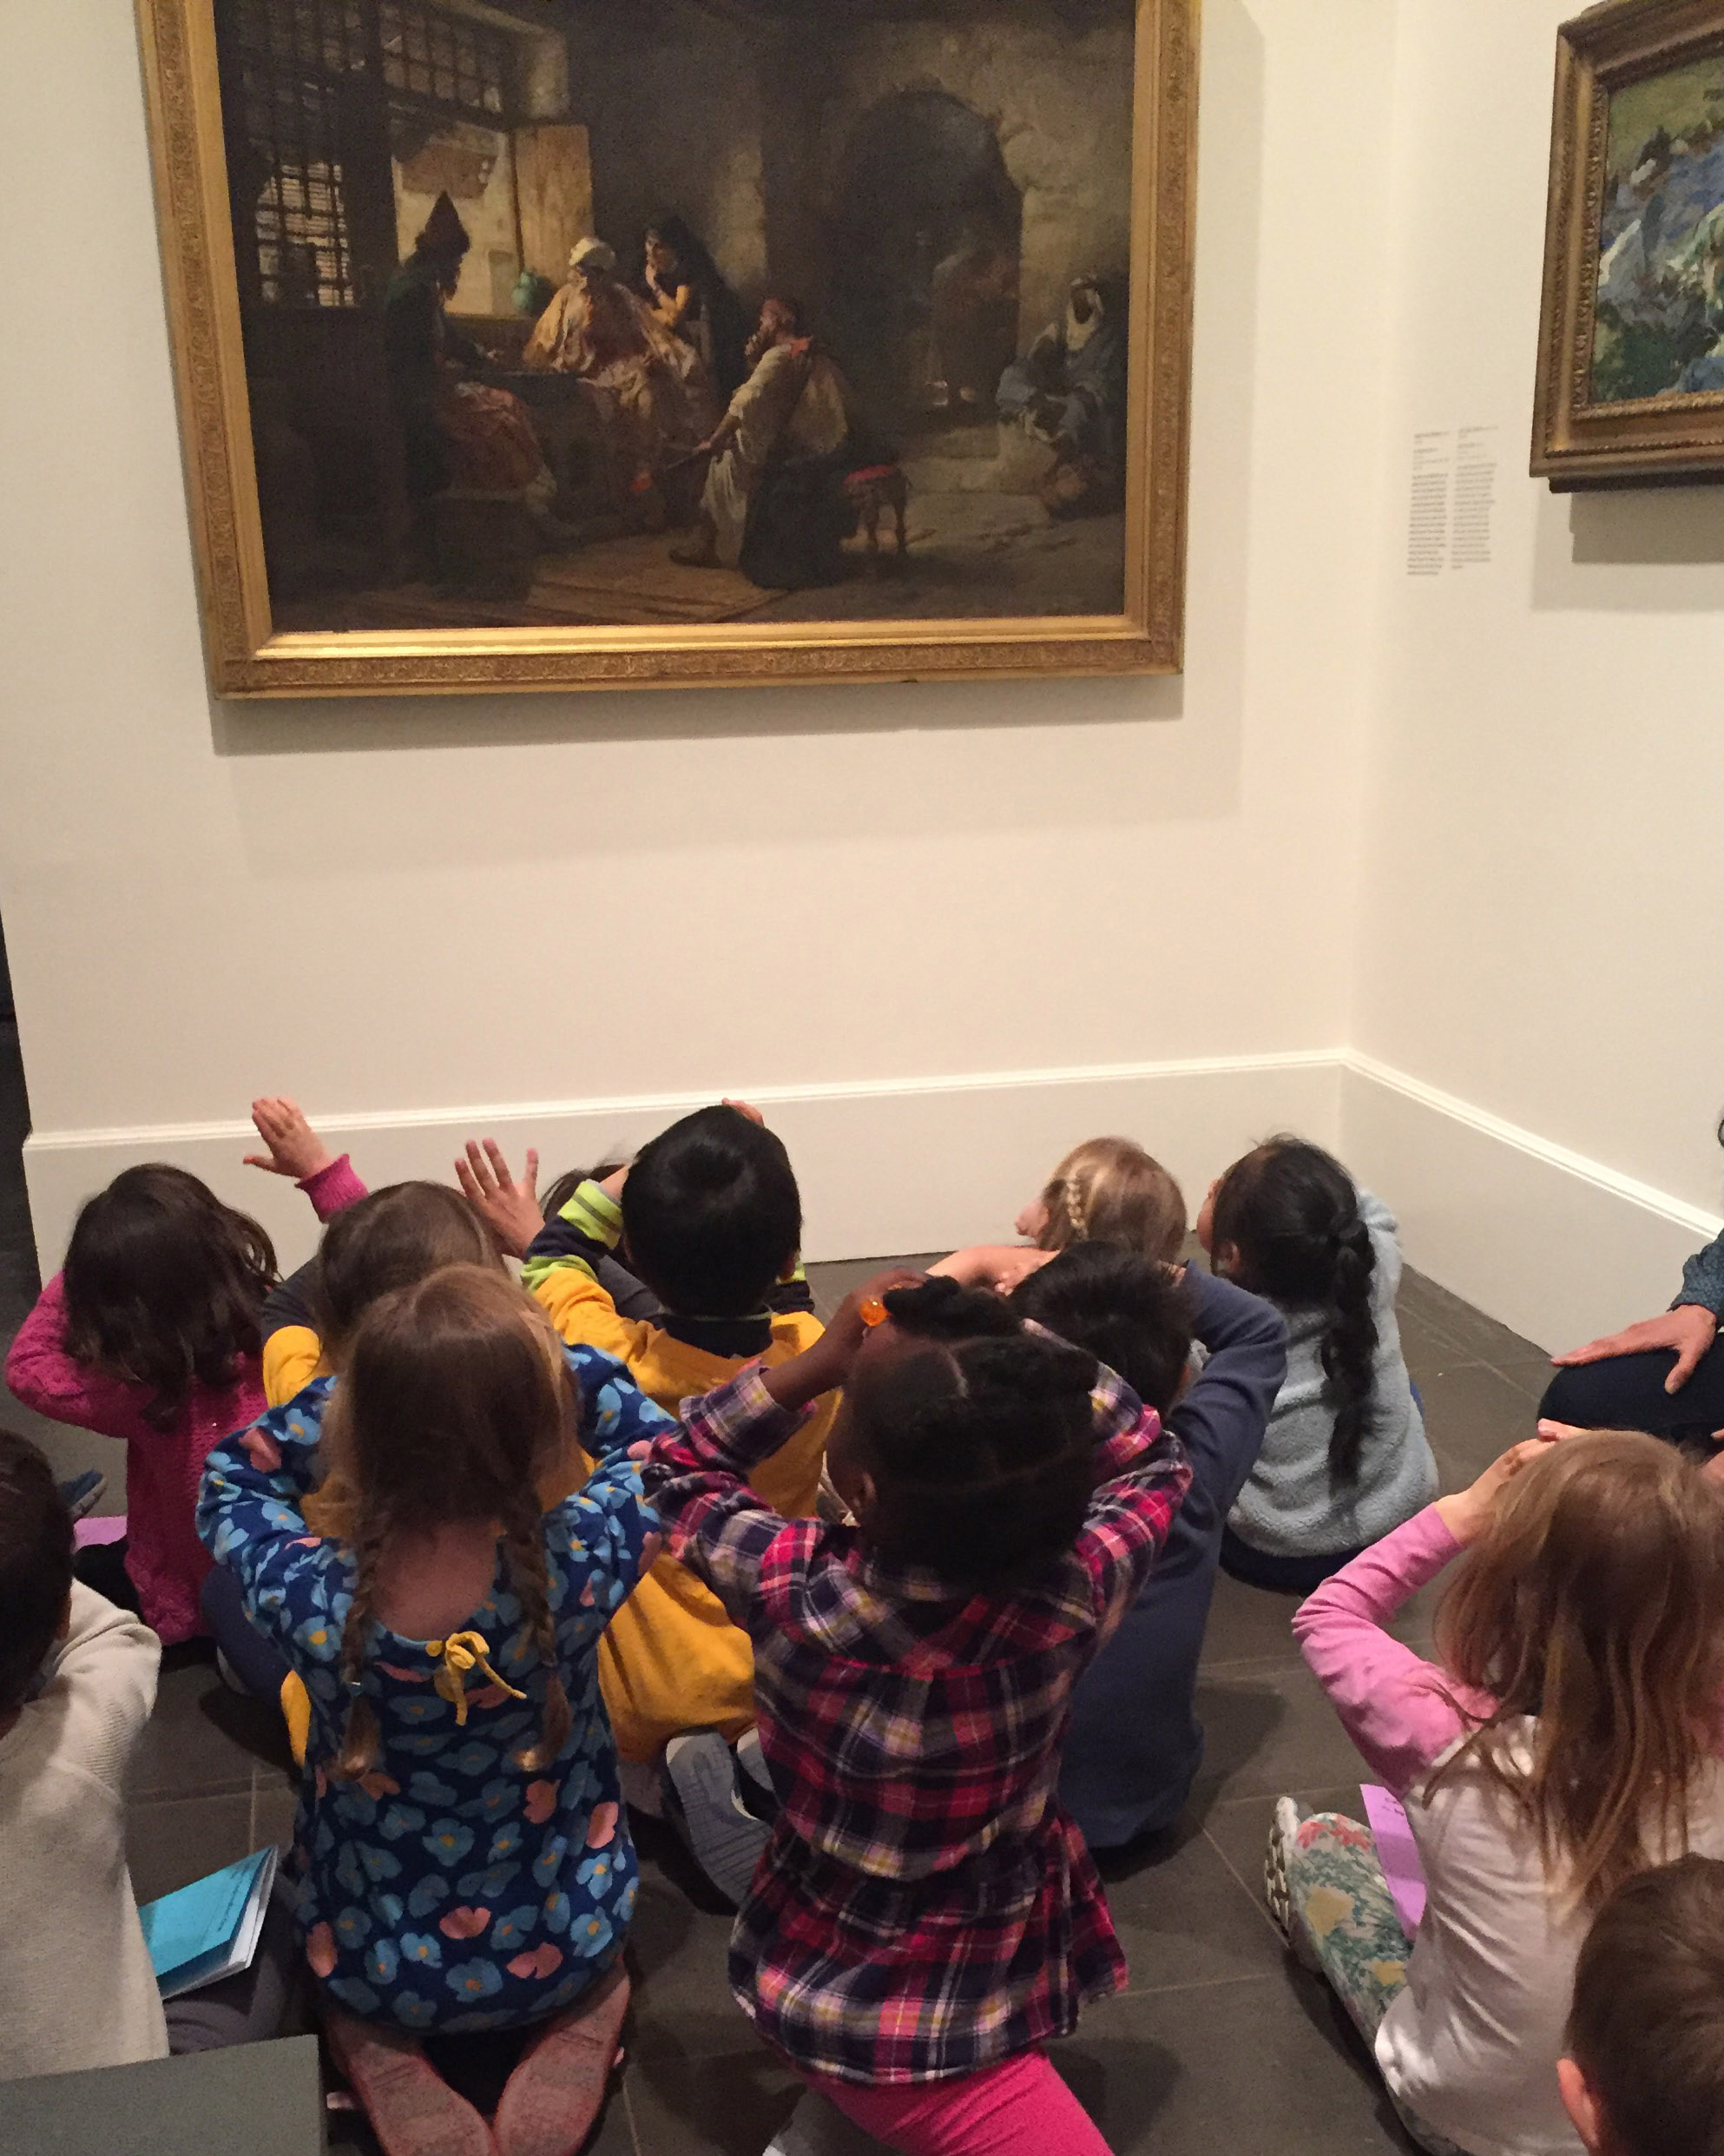 Figure 1: Kindergarten students examine an artwork at the Brooklyn Museum.